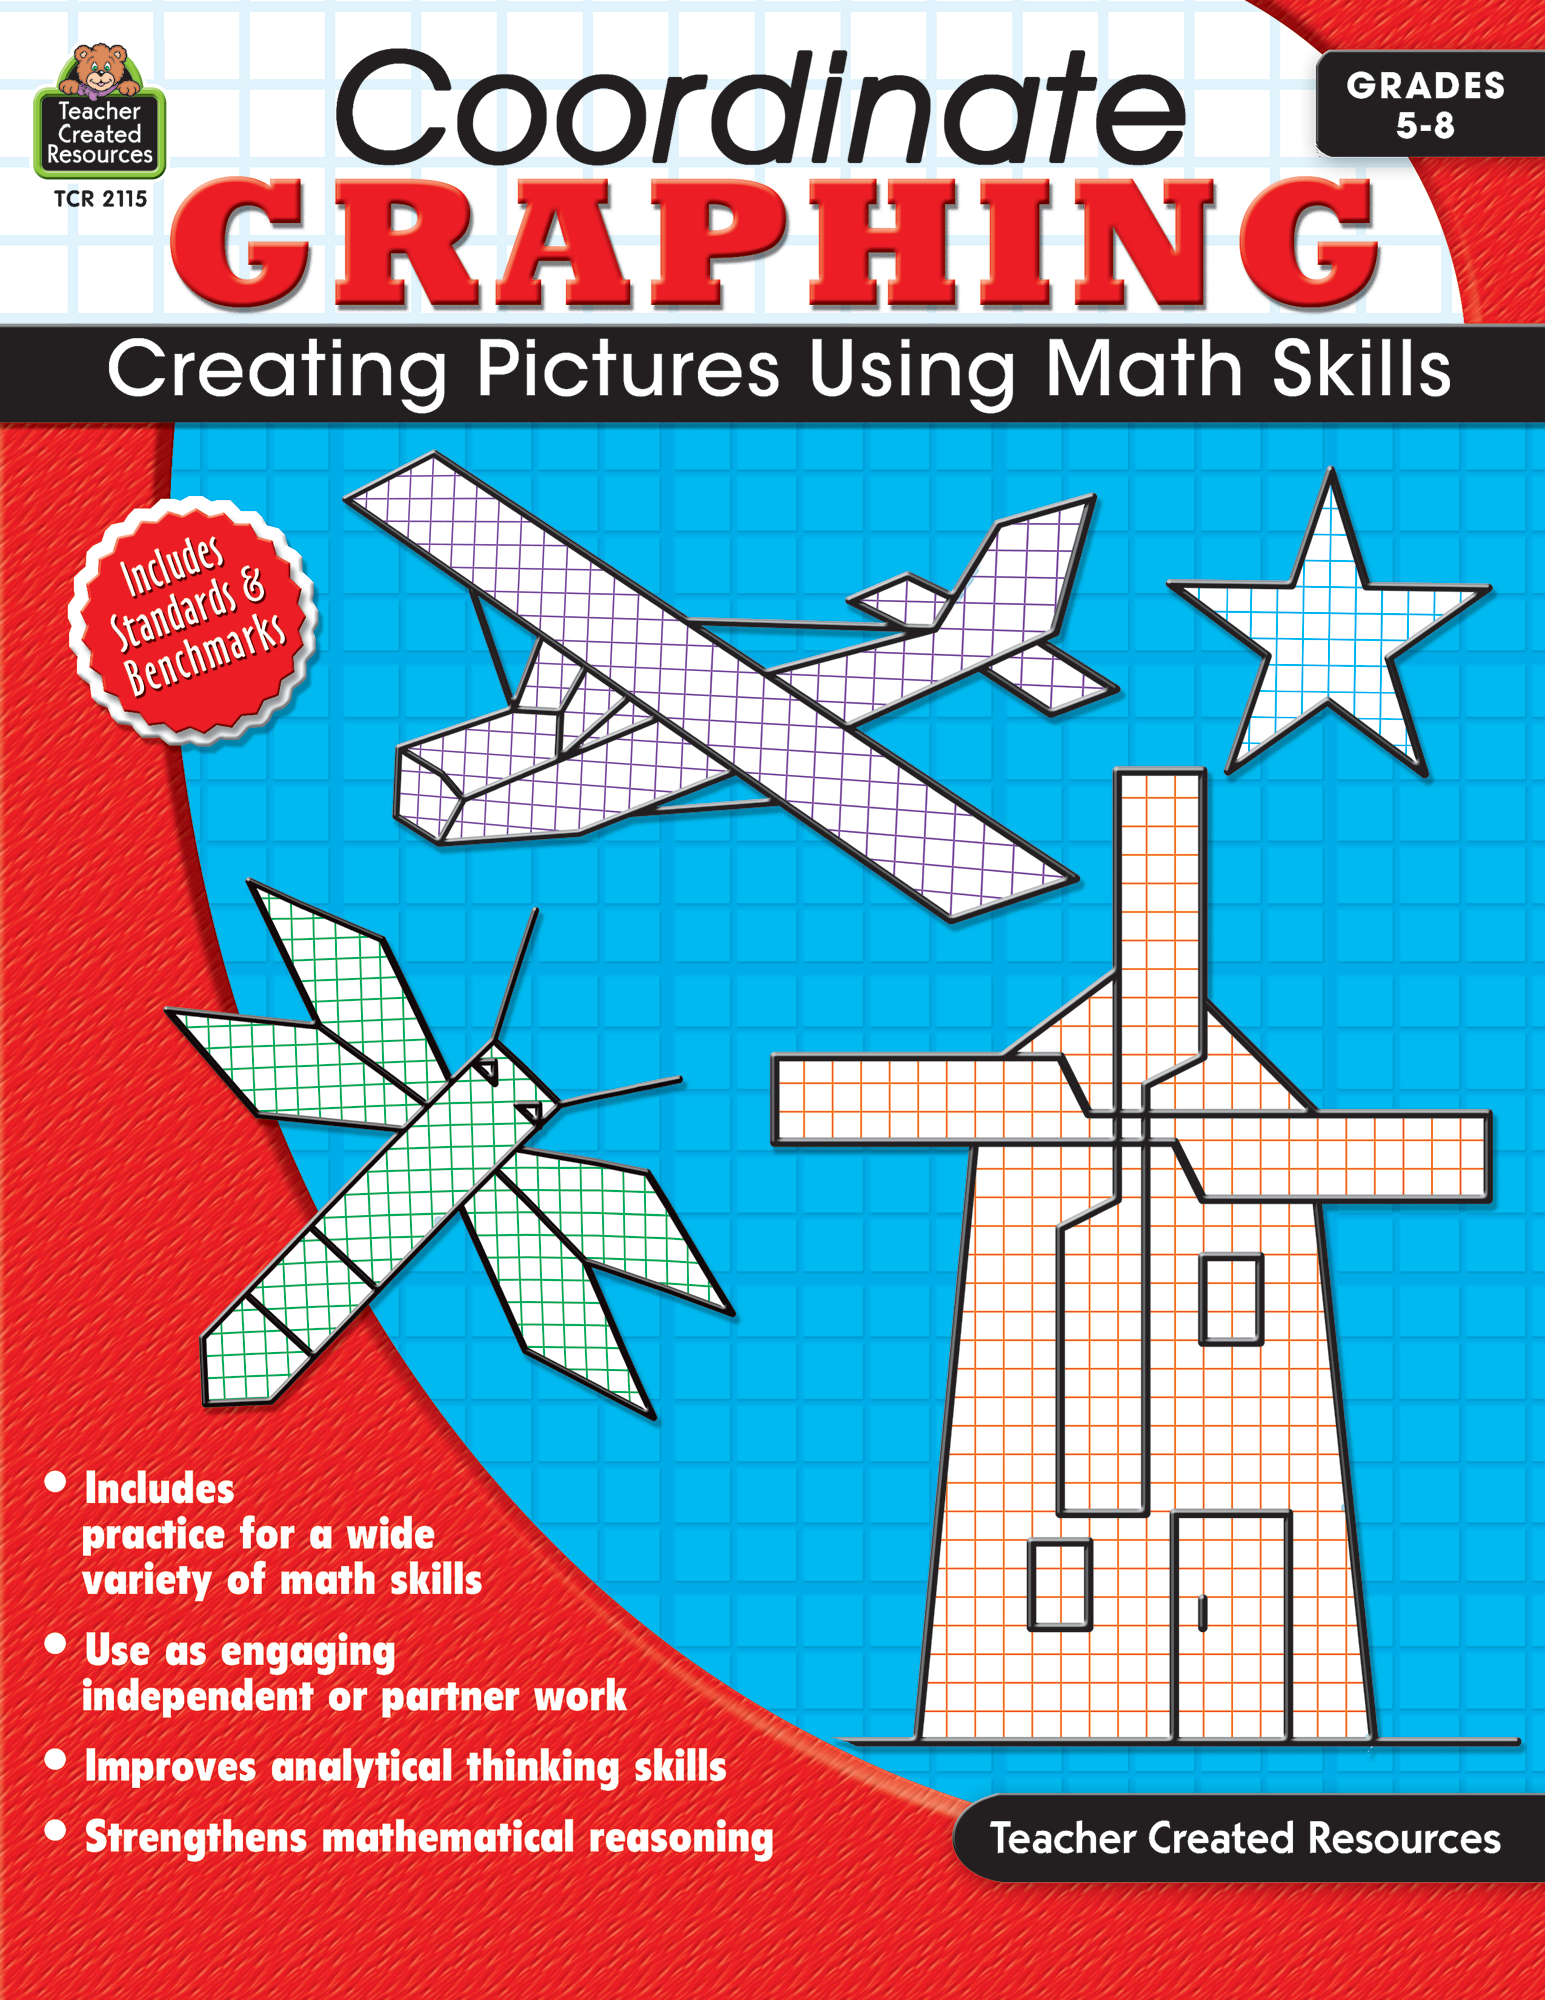 Worksheets Teacher Created Materials Inc Worksheets coordinate graphing grade 5 8 tcr2115 teacher created resources